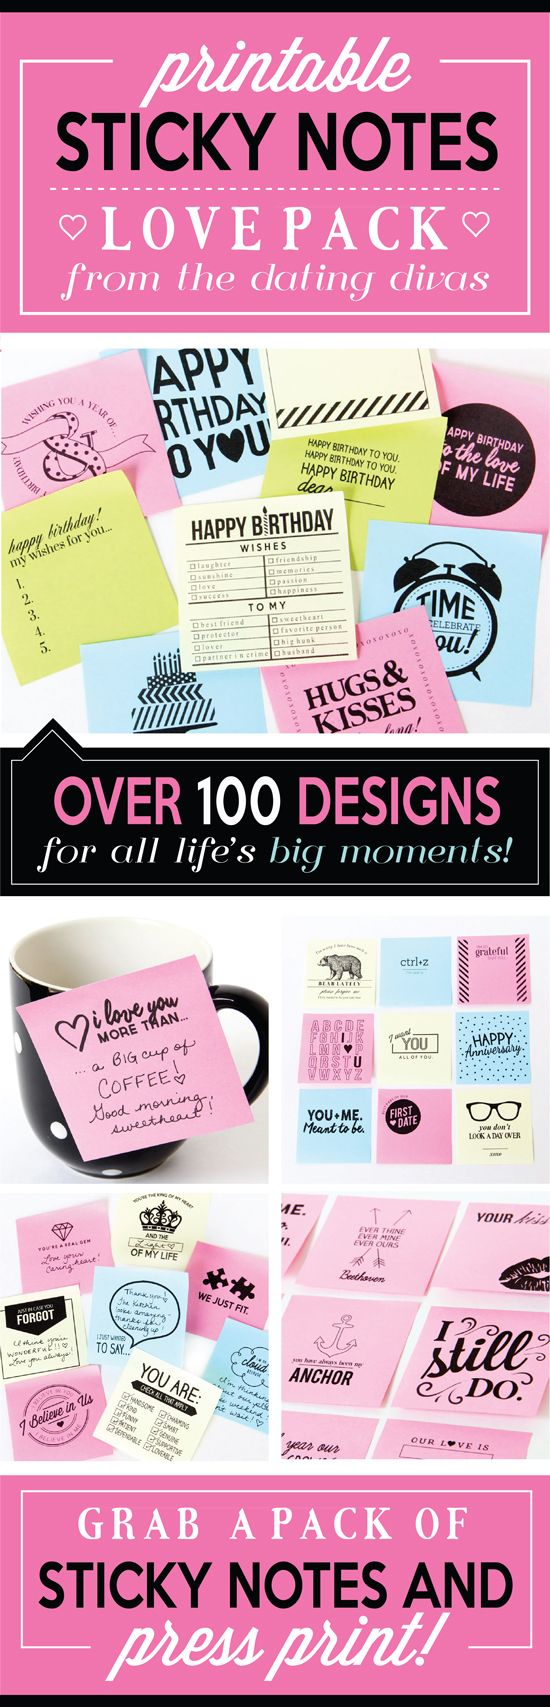 I LOVE these Sticky Notes! Can't wait to surprise my hubby on his birthday with these love notes! www.TheDatingDivas.com